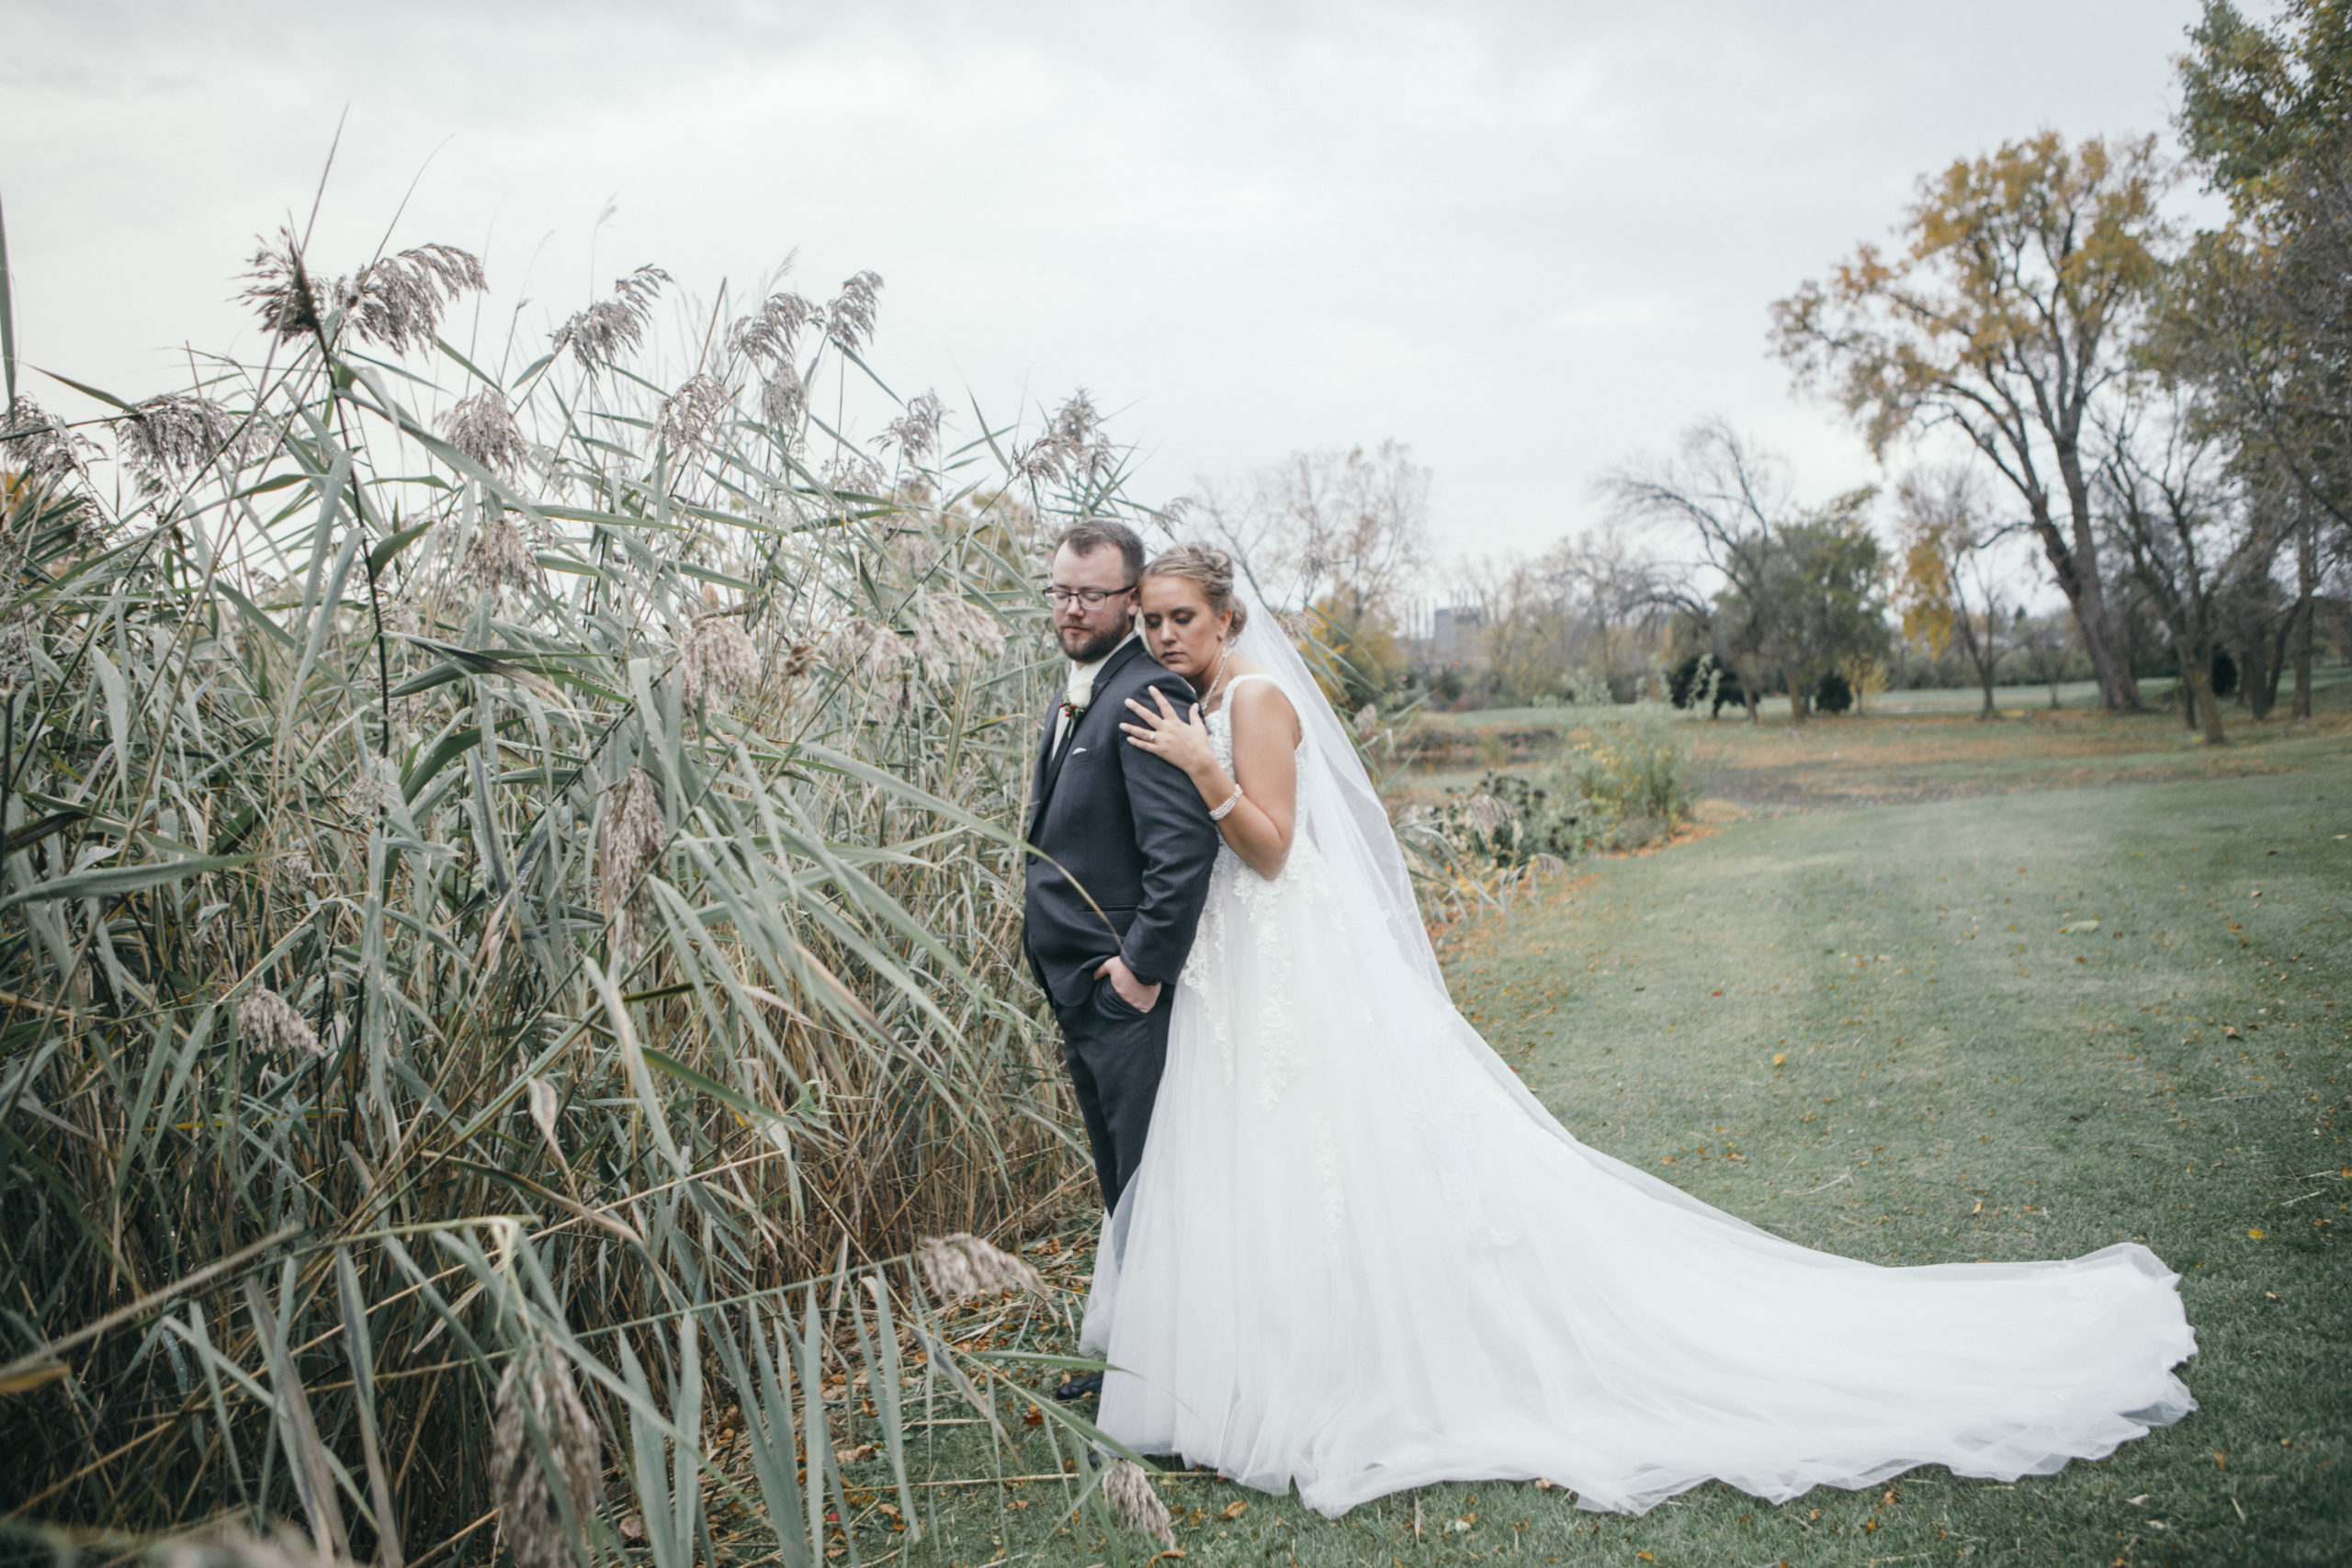 Weddings on a Budget…yes you can!